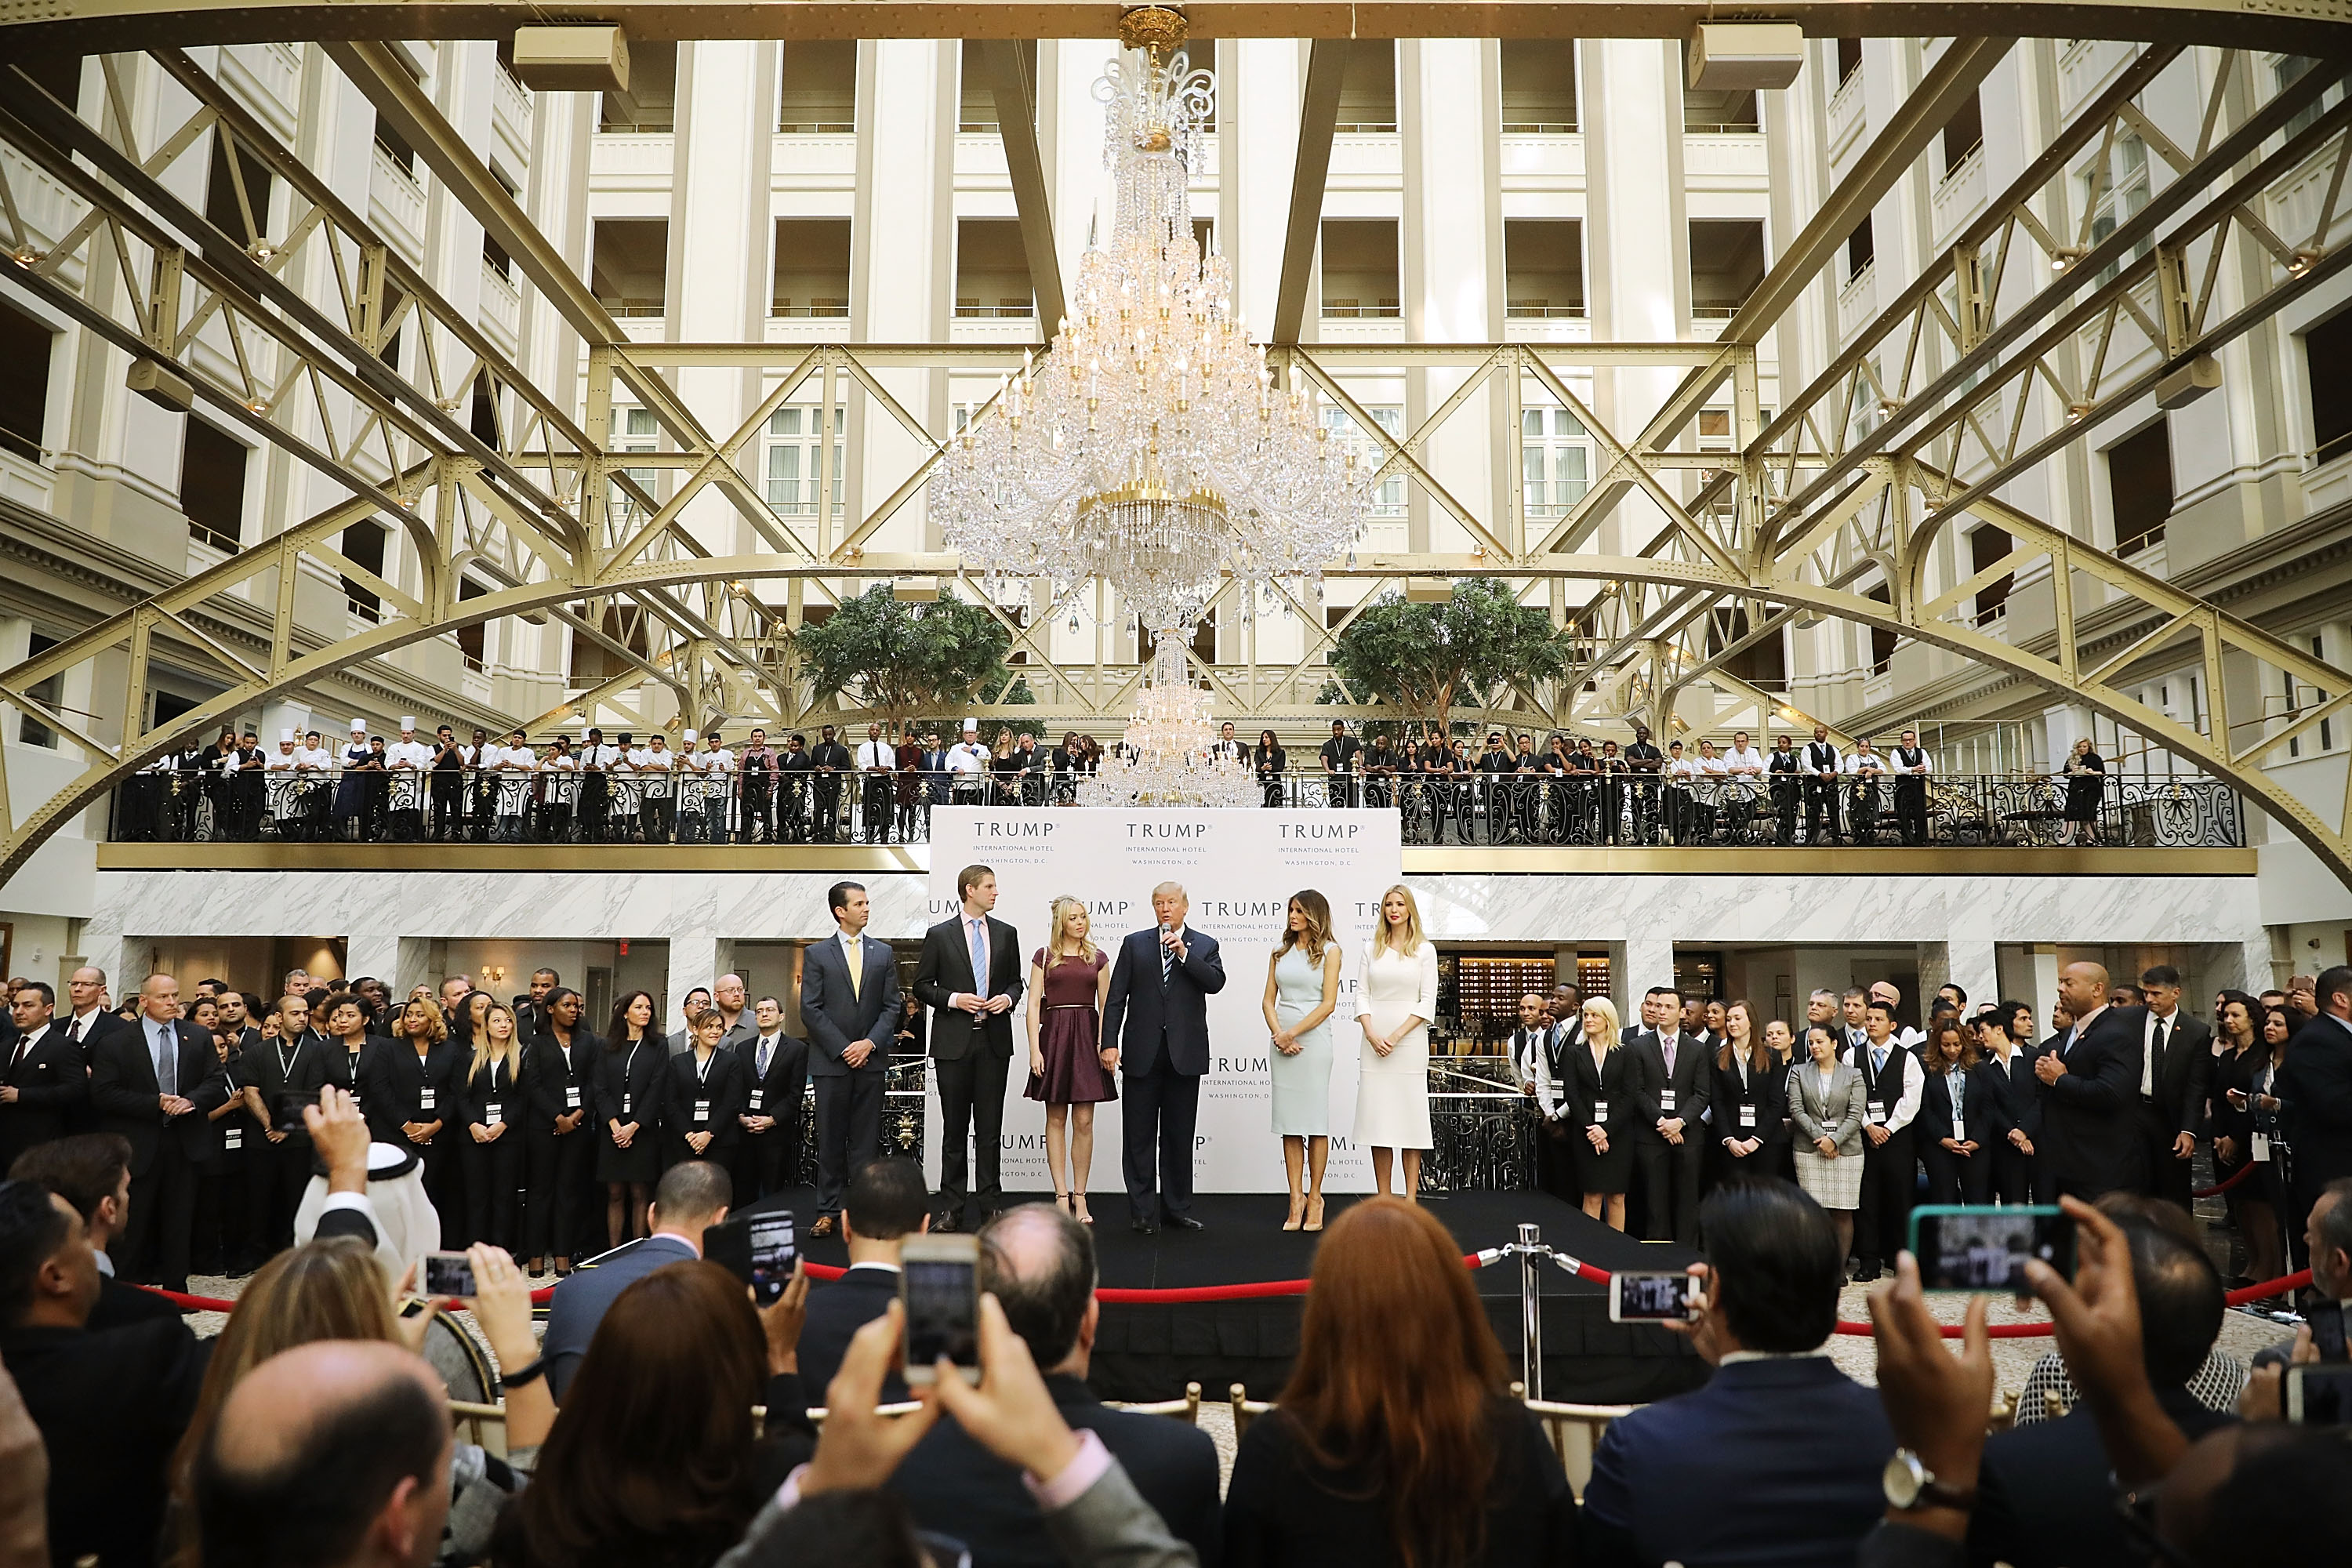 President Donald Trump and his family cut the ribbon at the new Trump International Hotel in Washington, D.C. on October 26, 2016. (Chip Somodevilla/Getty Images)